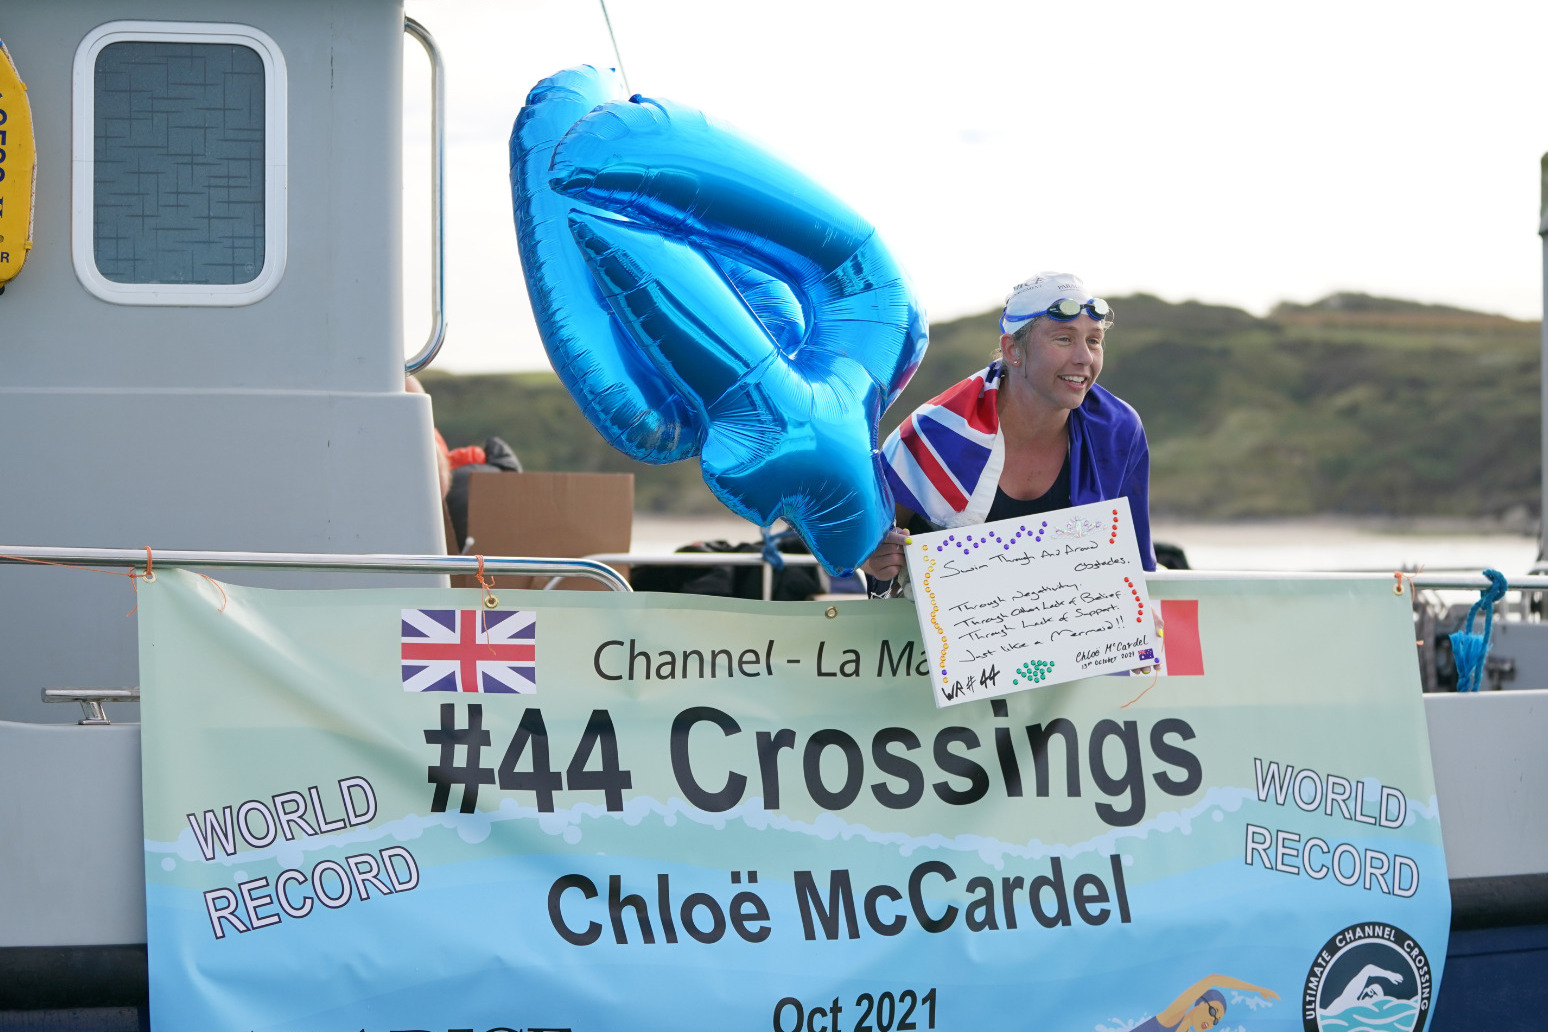 Endurance swimmer makes history with 44th English Channel crossing